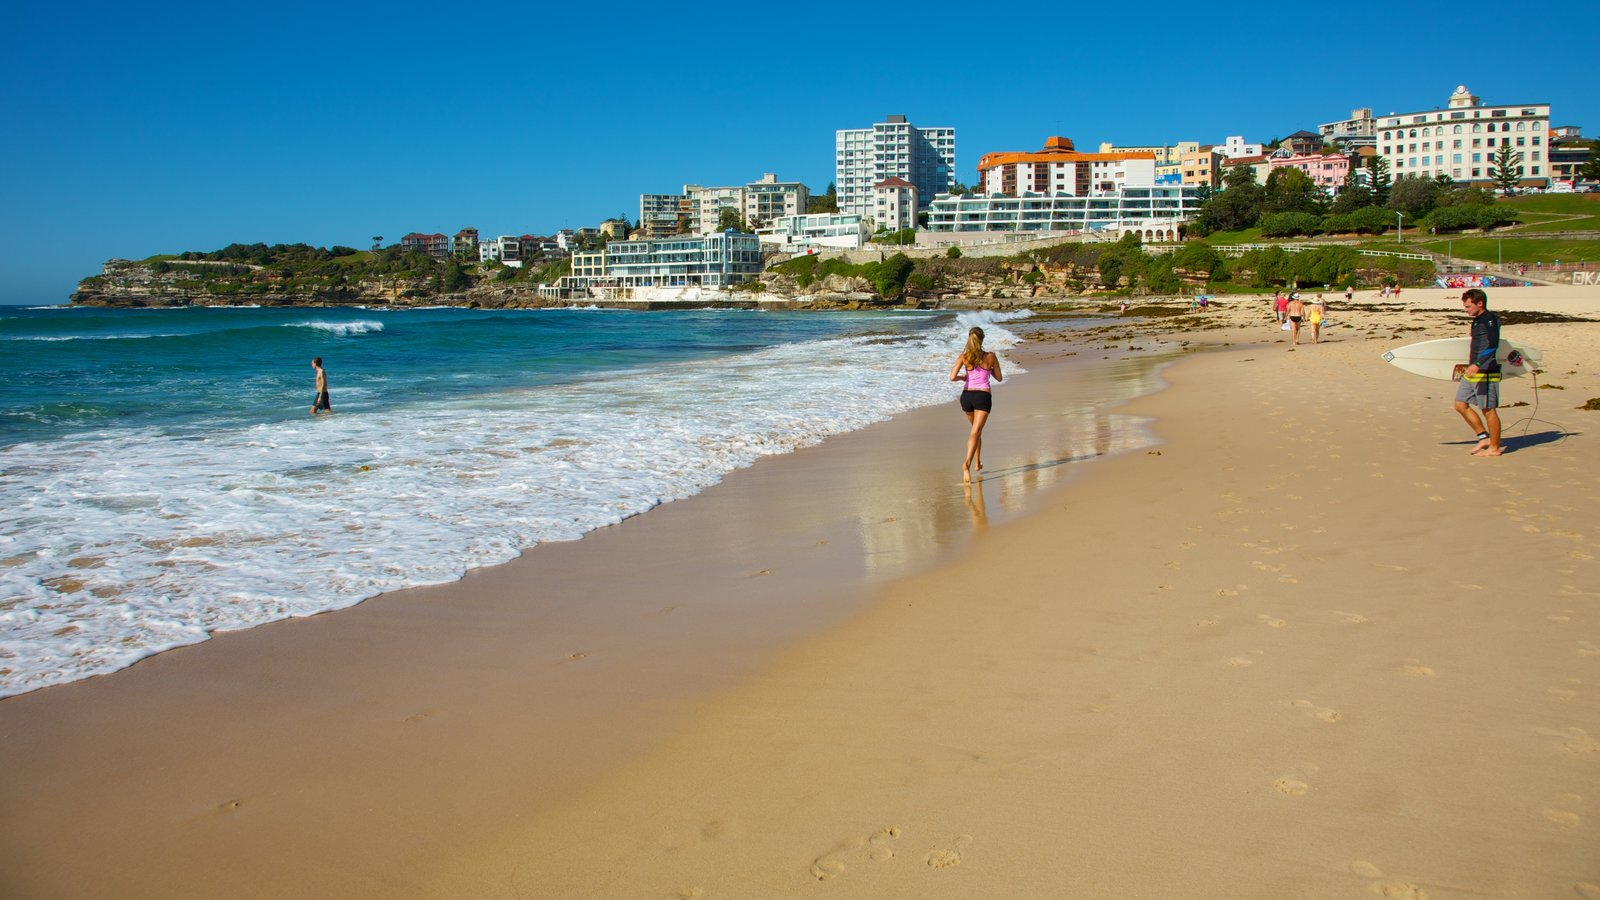 Sydney which includes a beach and a coastal town